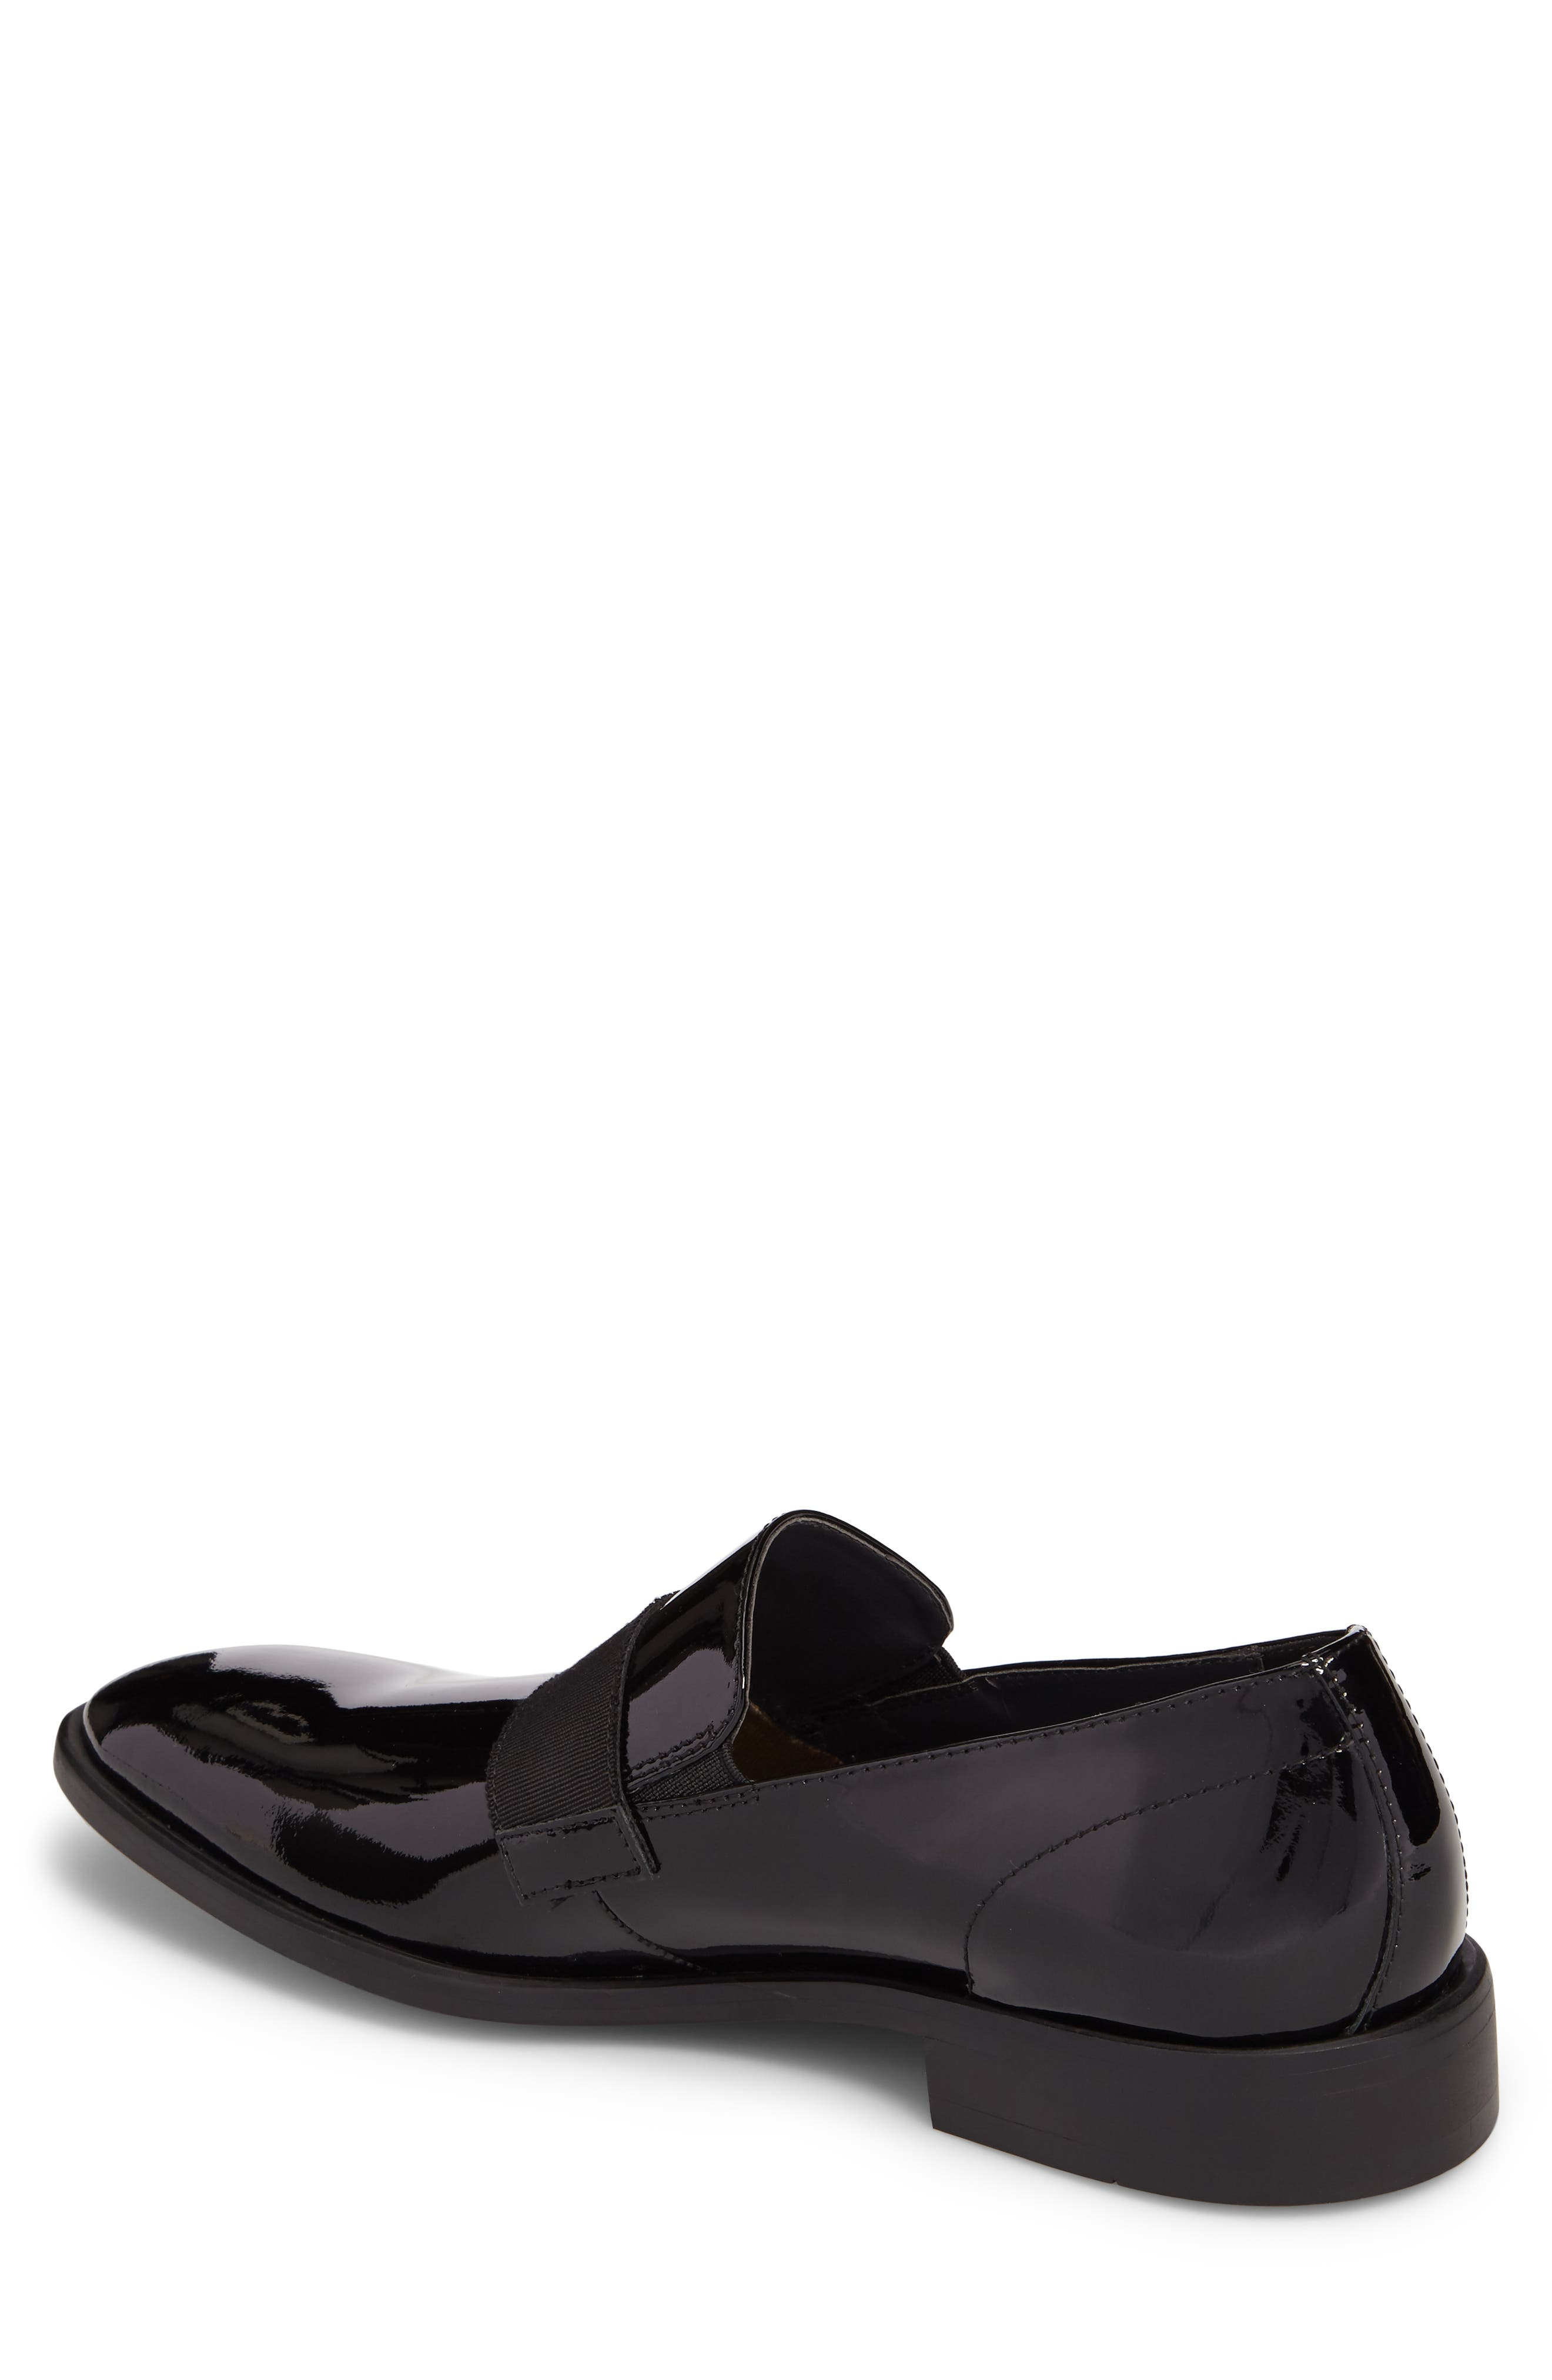 Tulsa Venetian Loafer,                             Alternate thumbnail 2, color,                             BLACK PATENT LEATHER